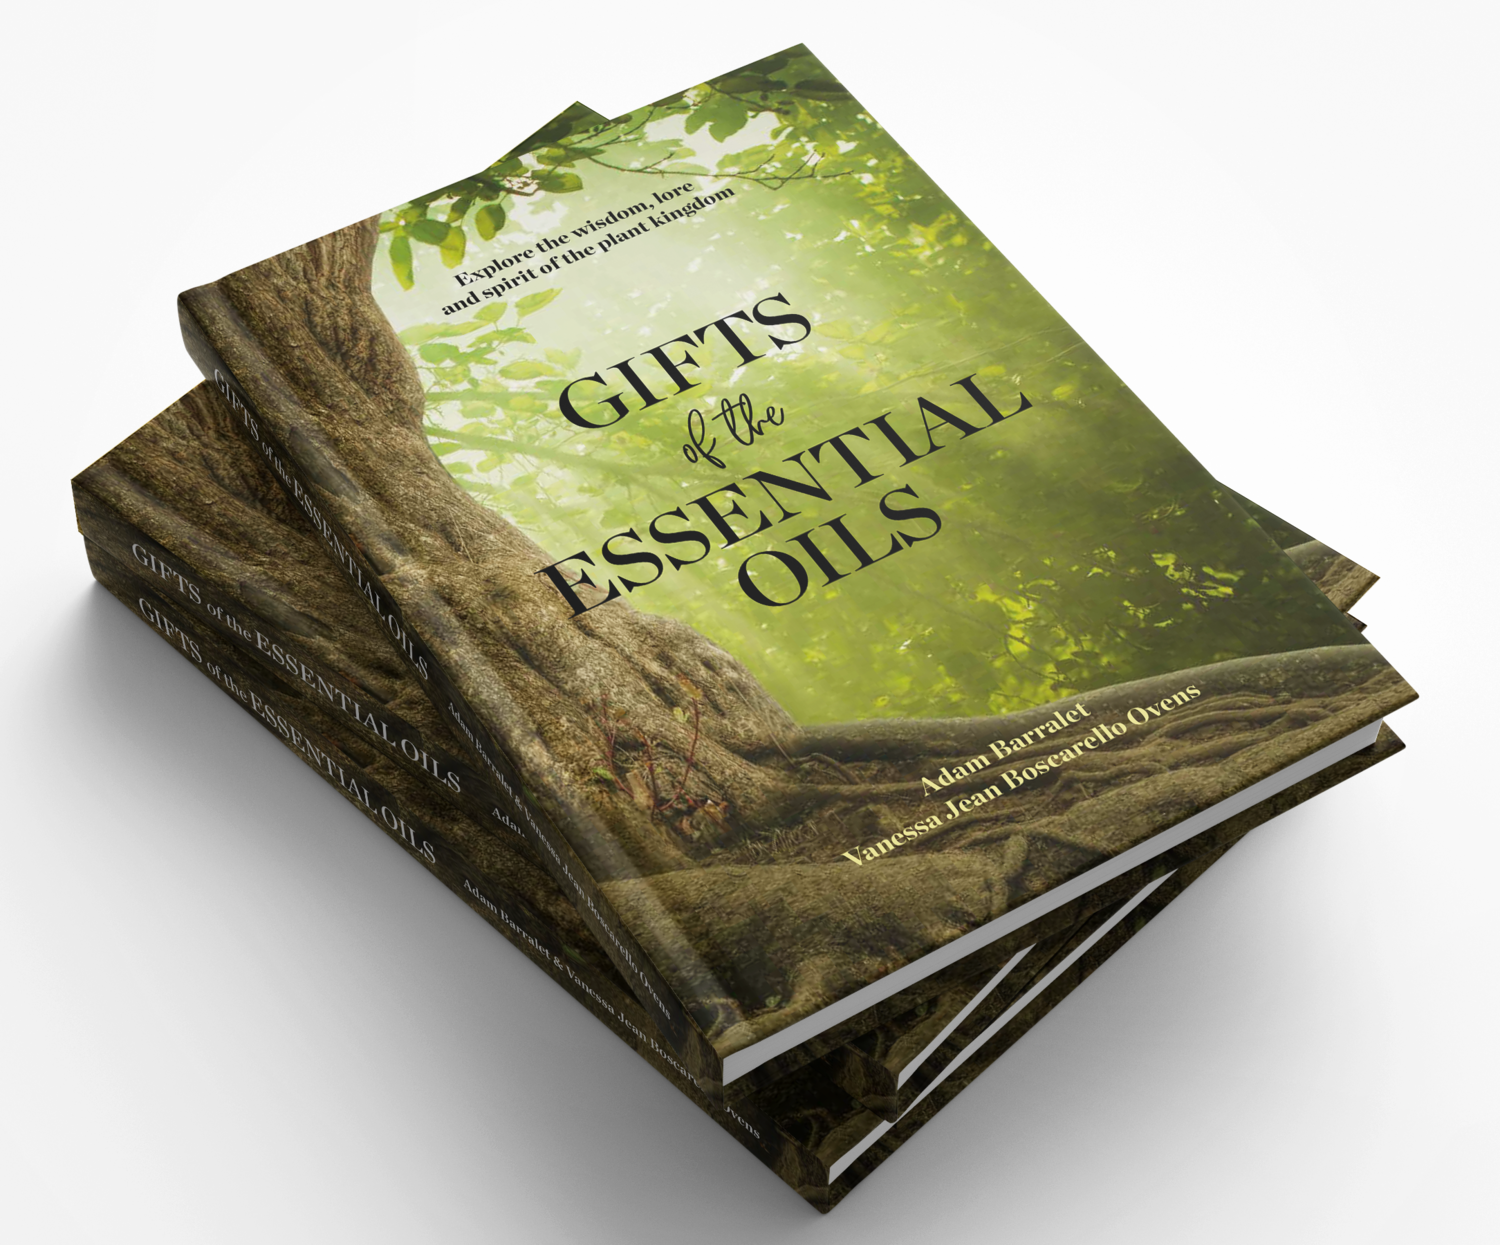 *** PRE-ORDER *** Gifts of the Essential Oils Book - Delivery Late September 2020